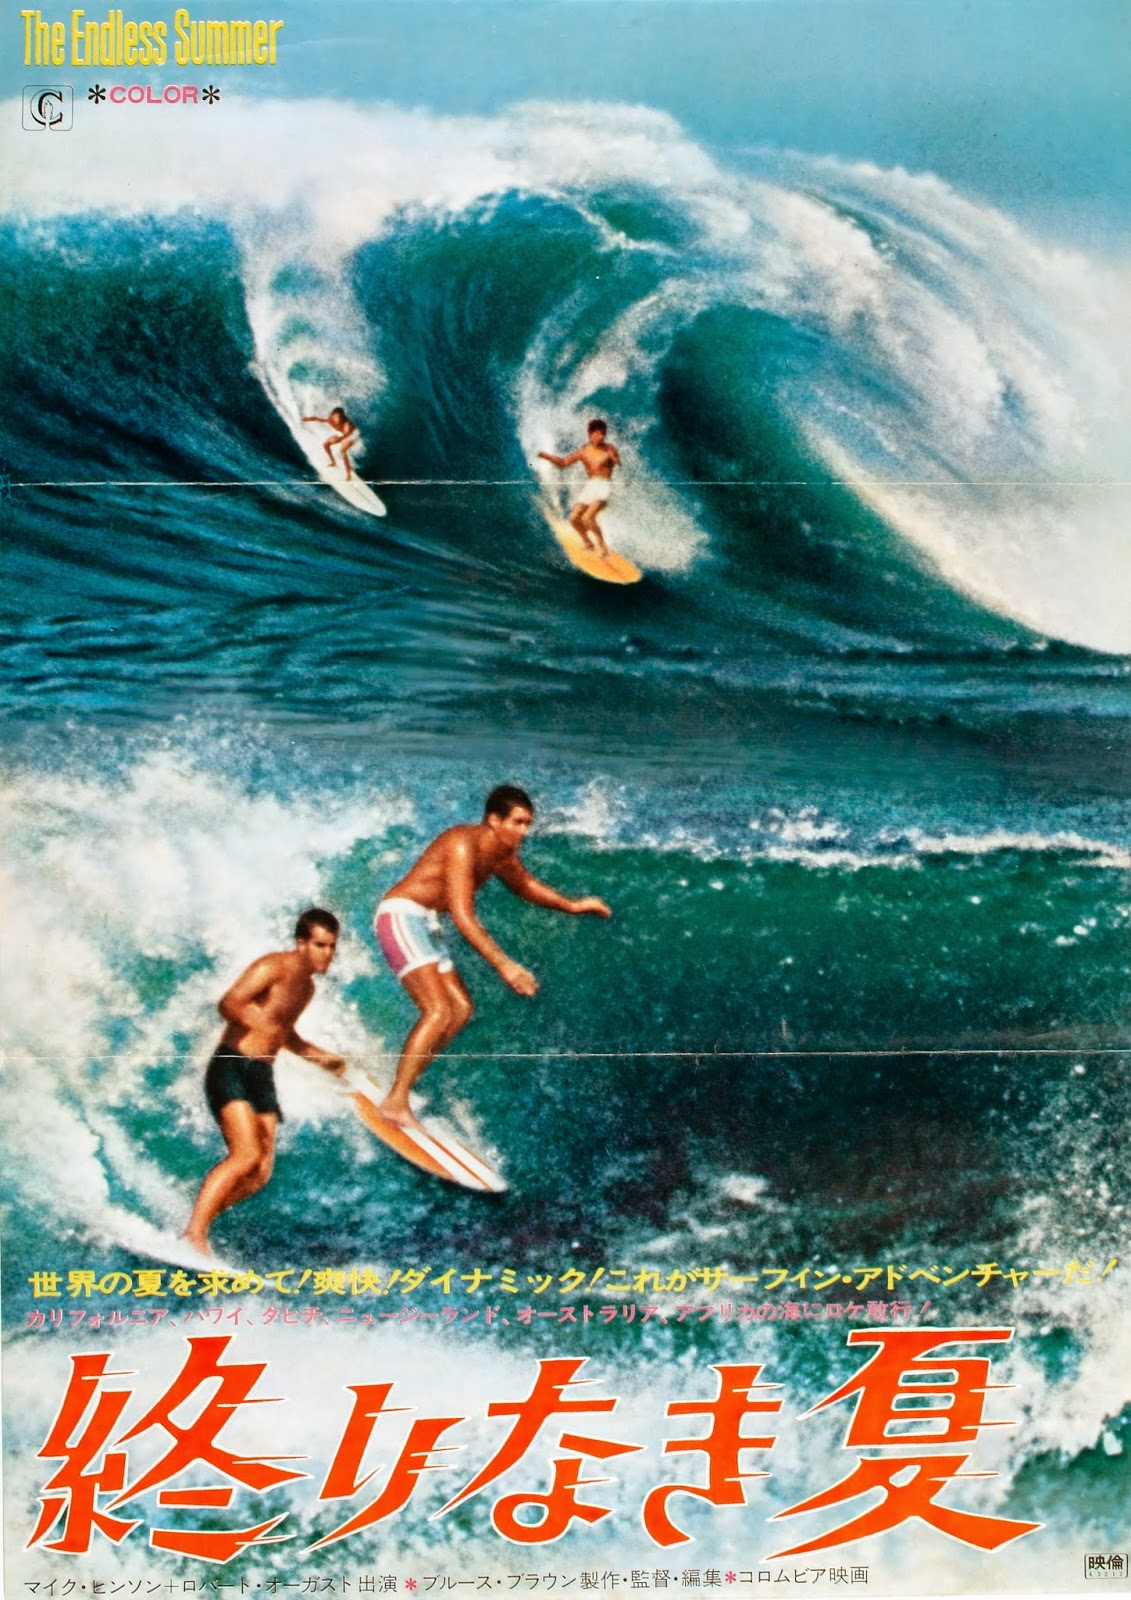 Surfing Heritage & Culture Center: The Endless Summer Story, Photos, and More...